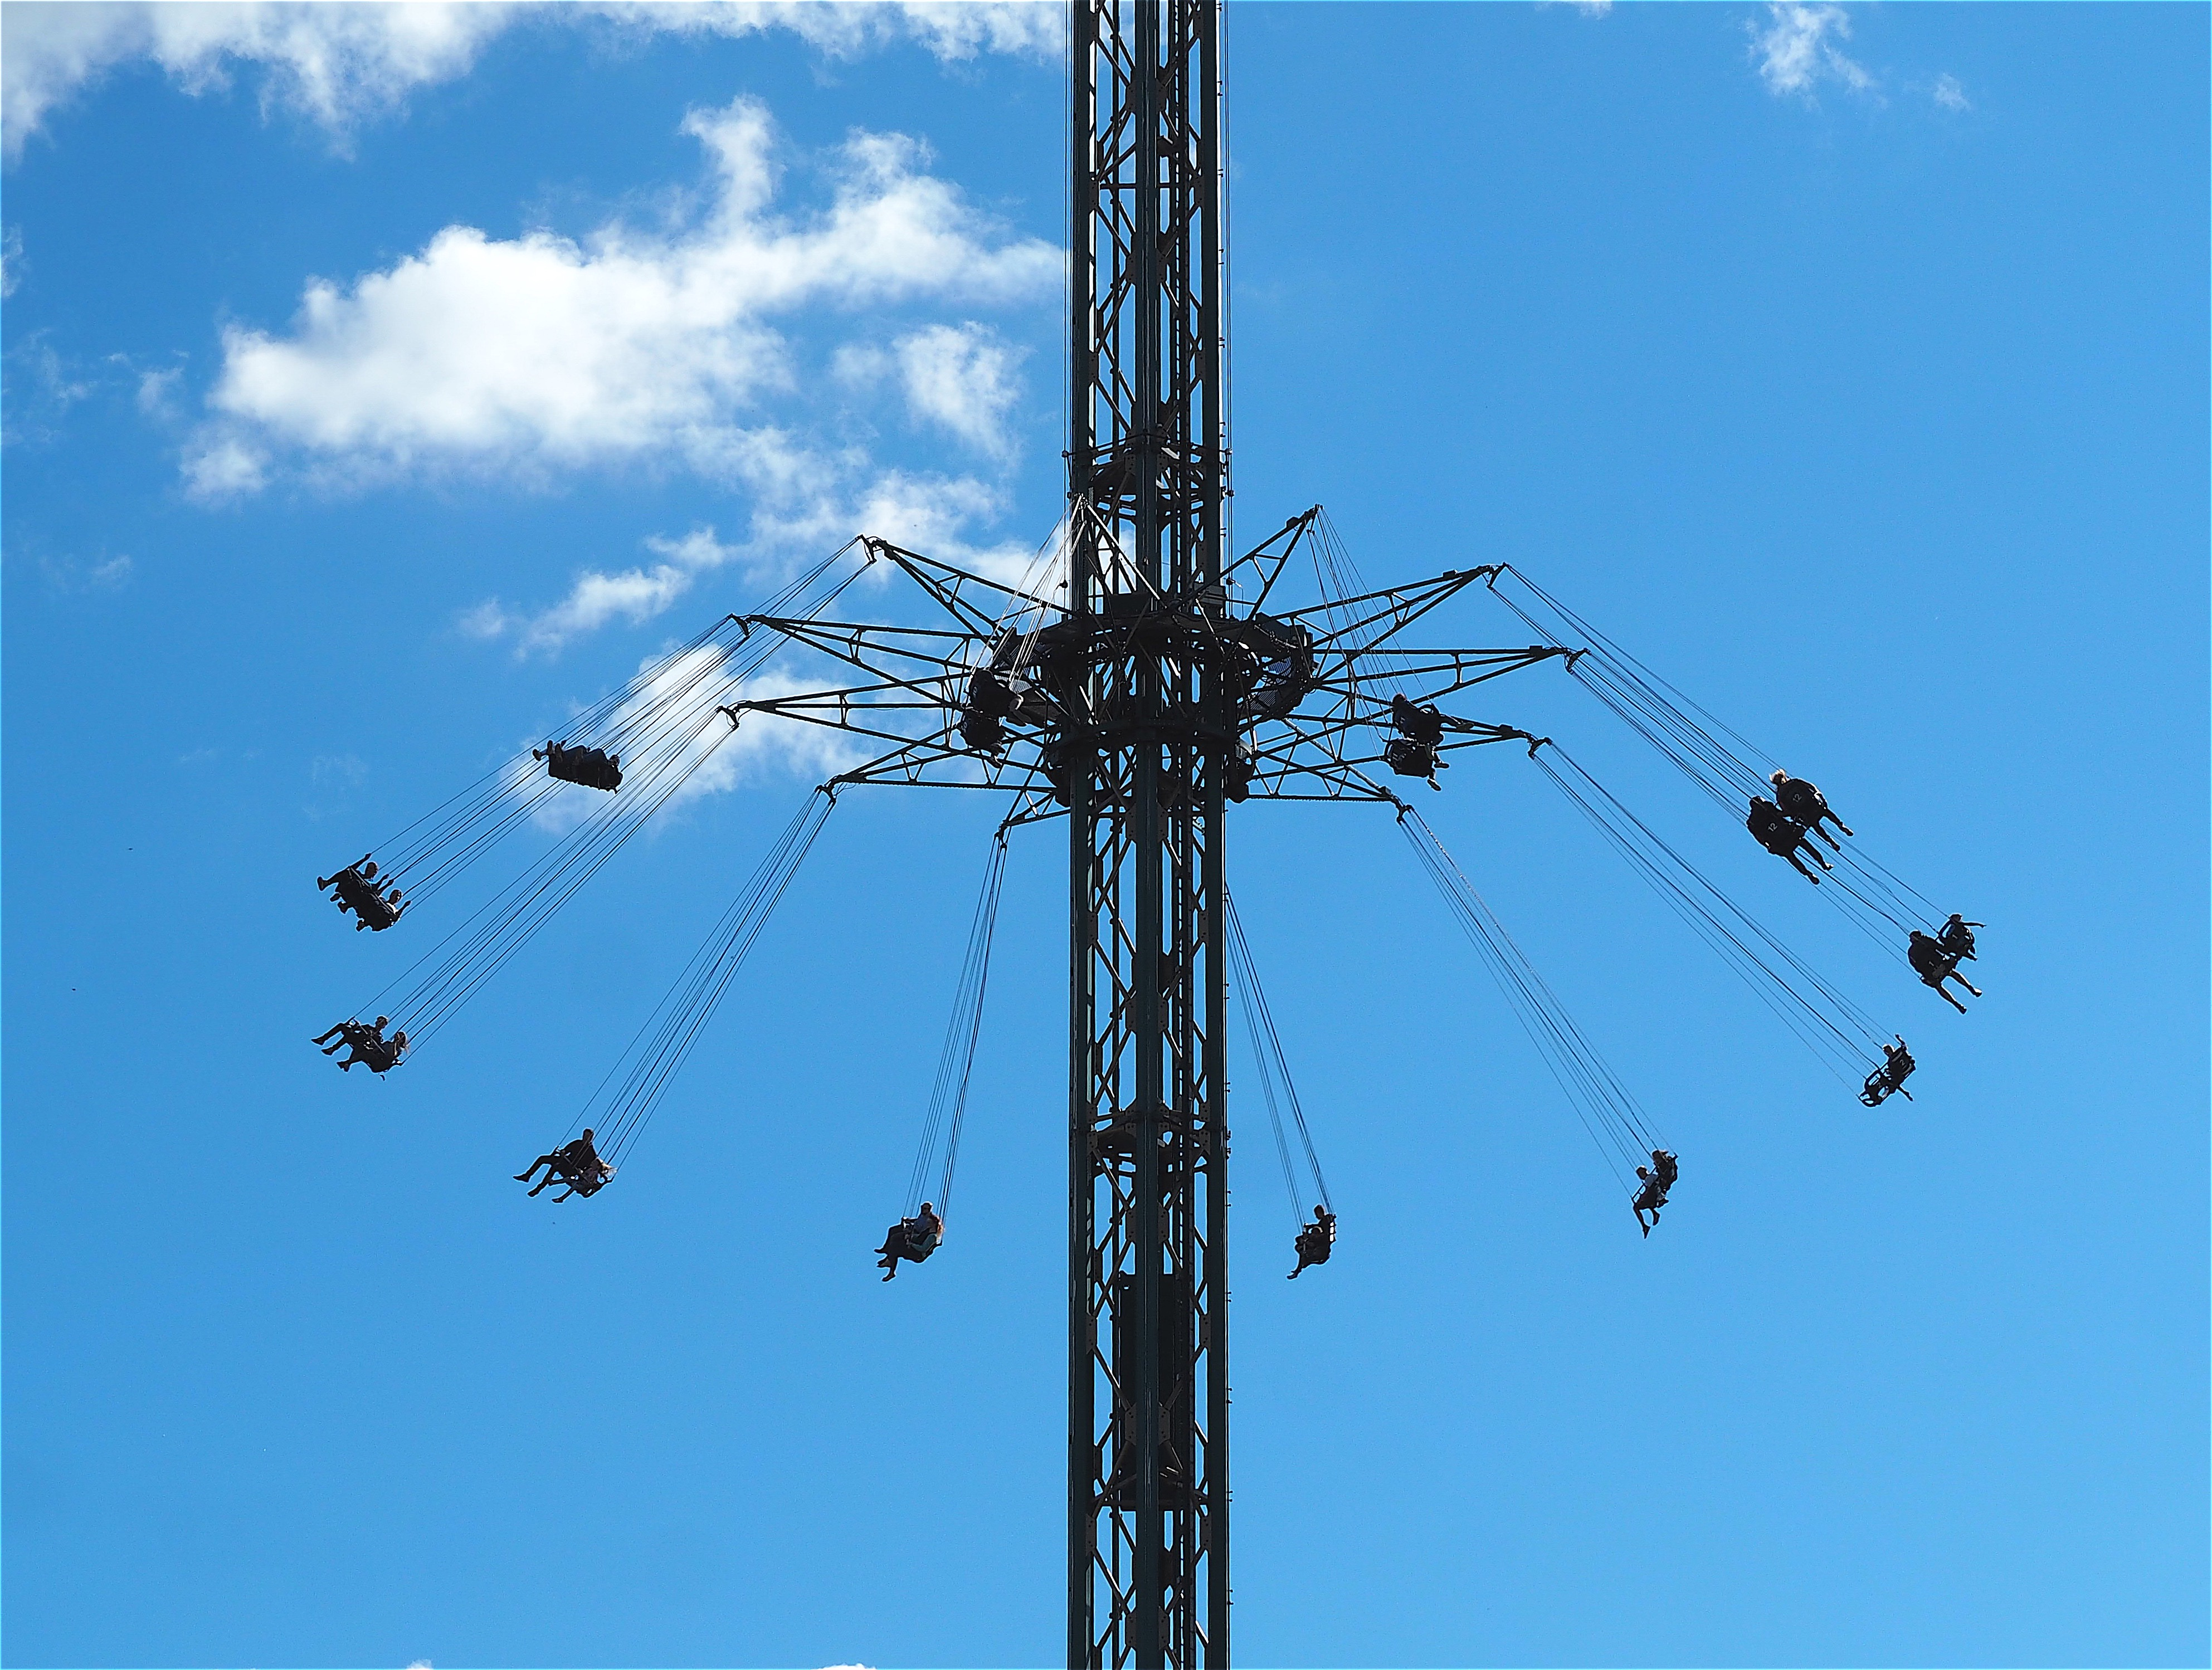 Thrill seeker rides